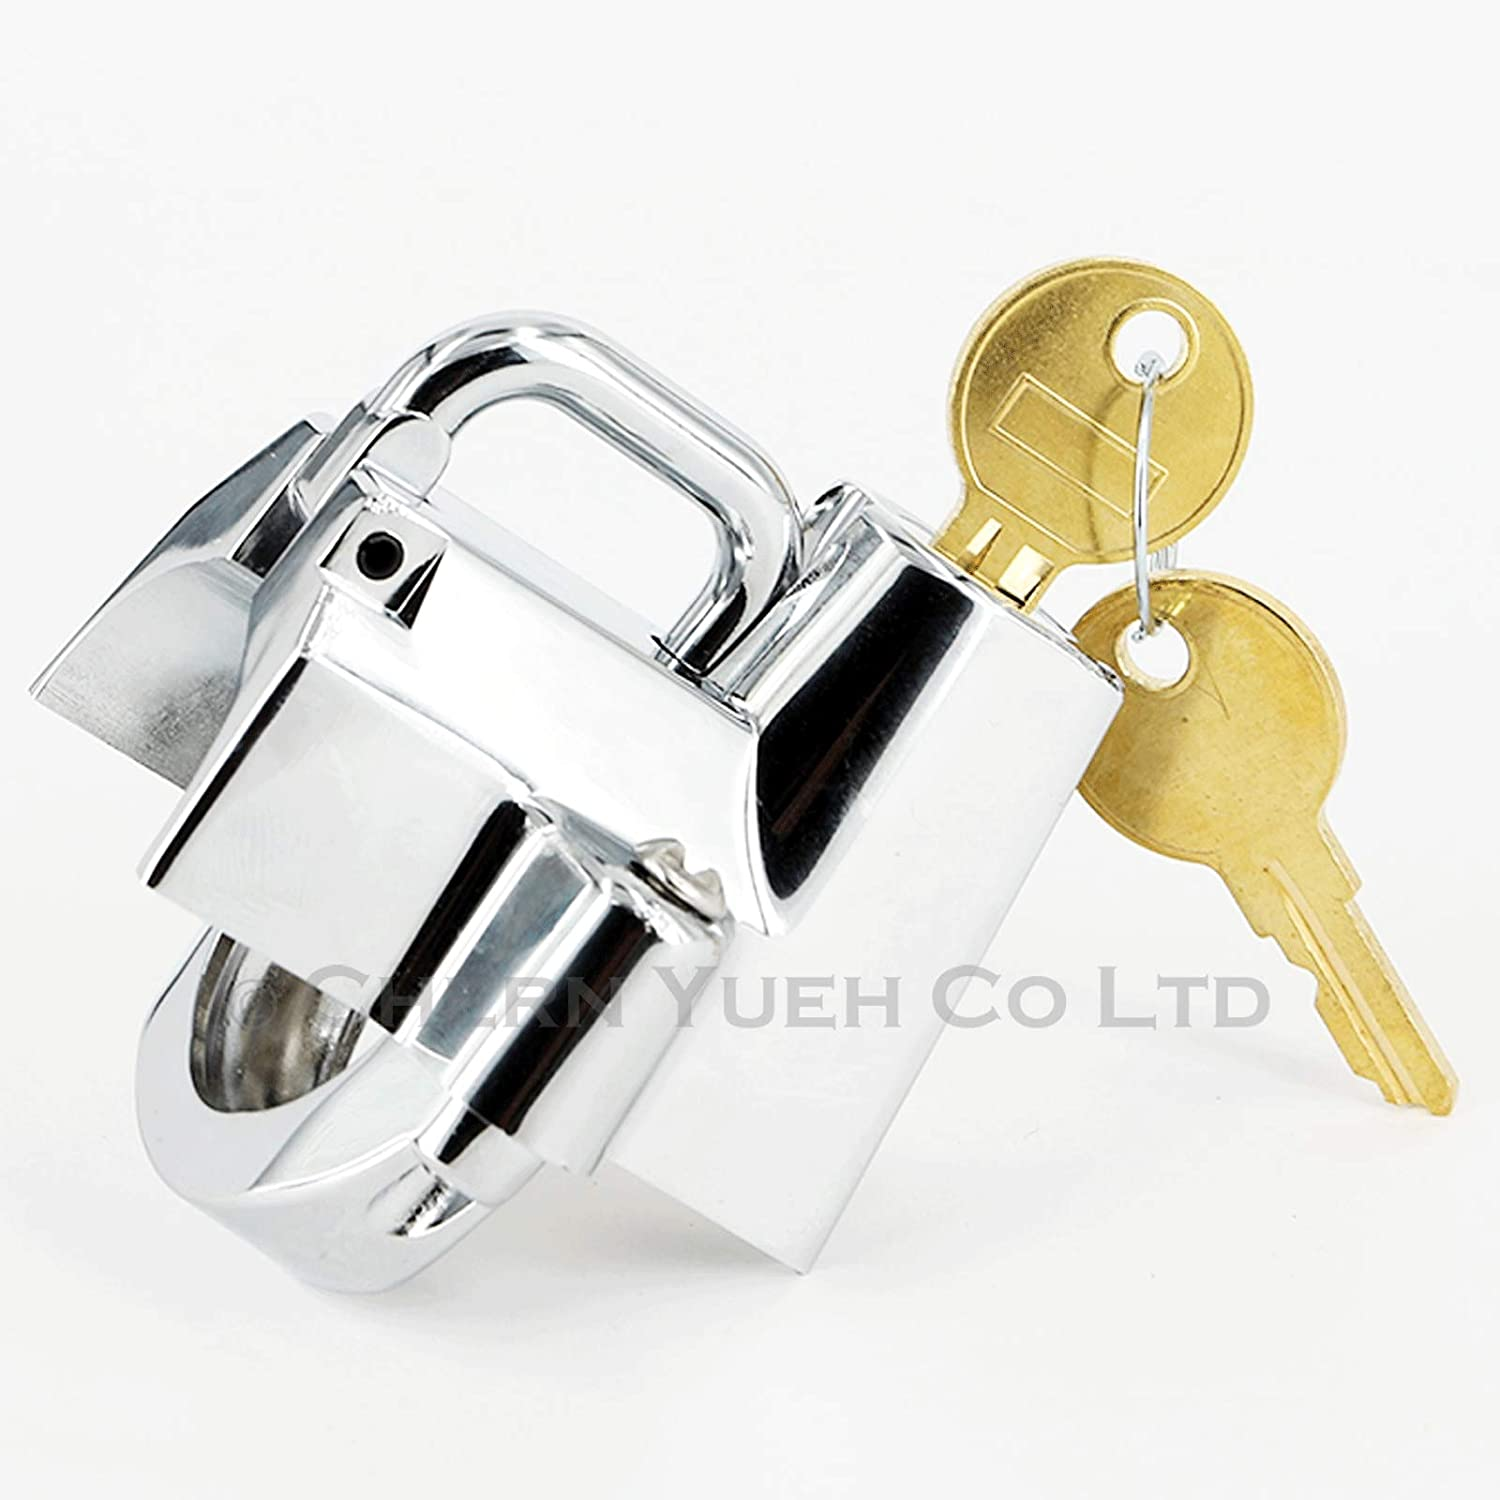 Tamper-Proof Helmet Security Lock Universal Fit for Motorcycles with 1-1//4 to 1-1//2 Diameter Frame Tubes Matte Black